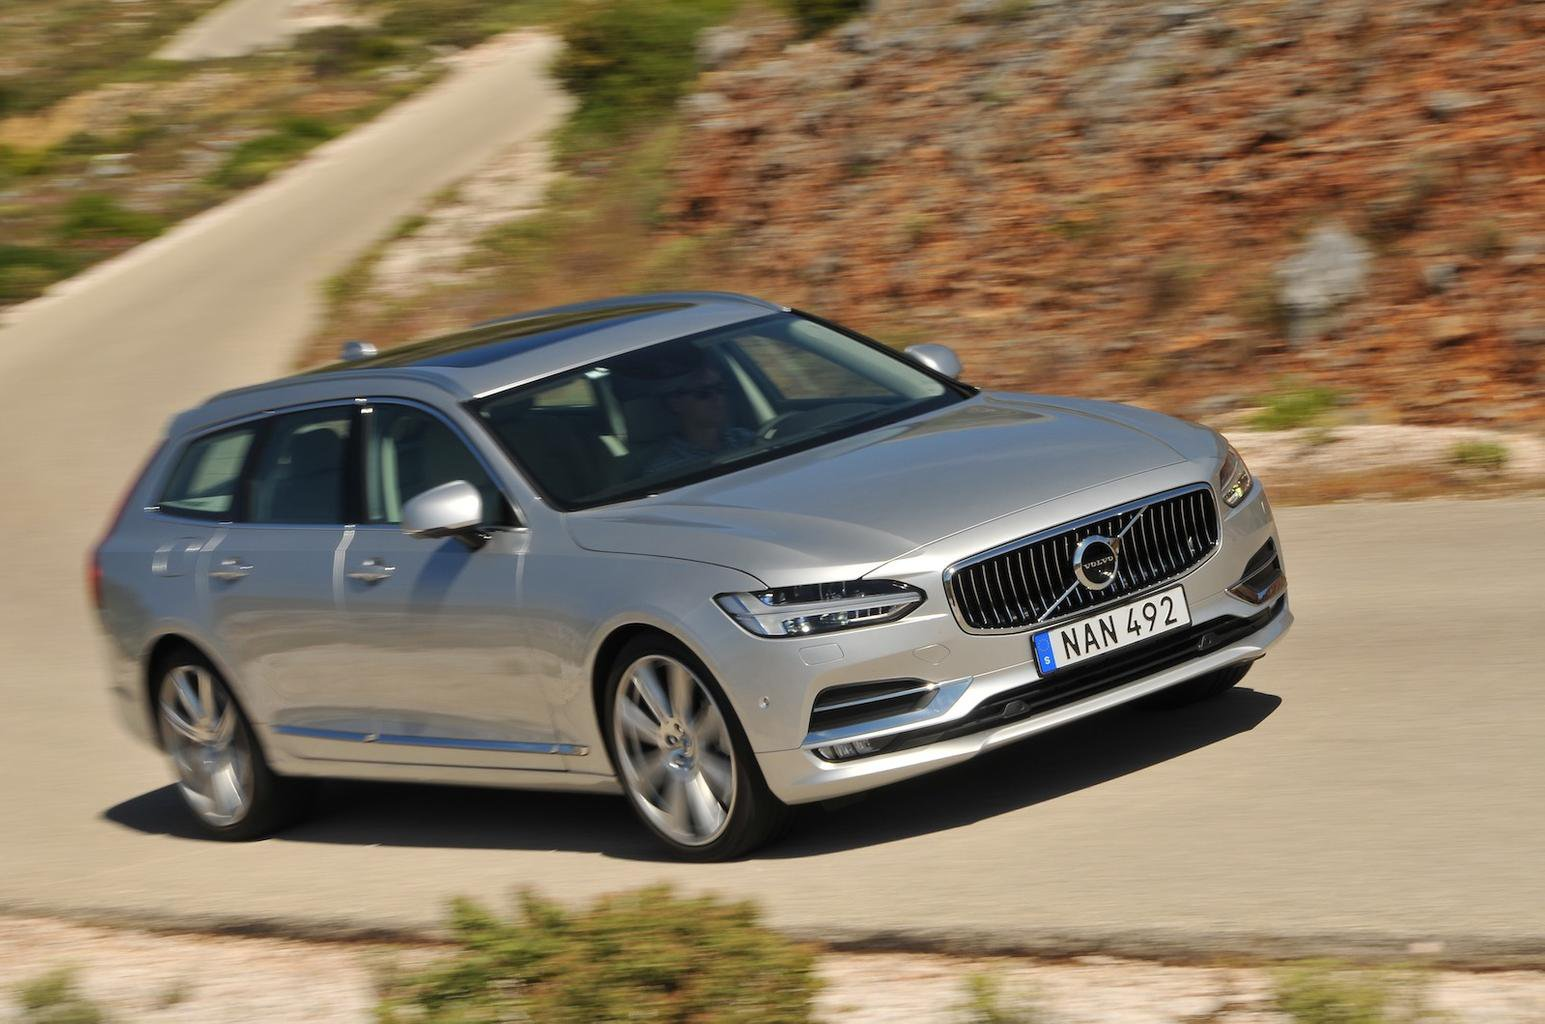 2016 Volvo V90 D5 review